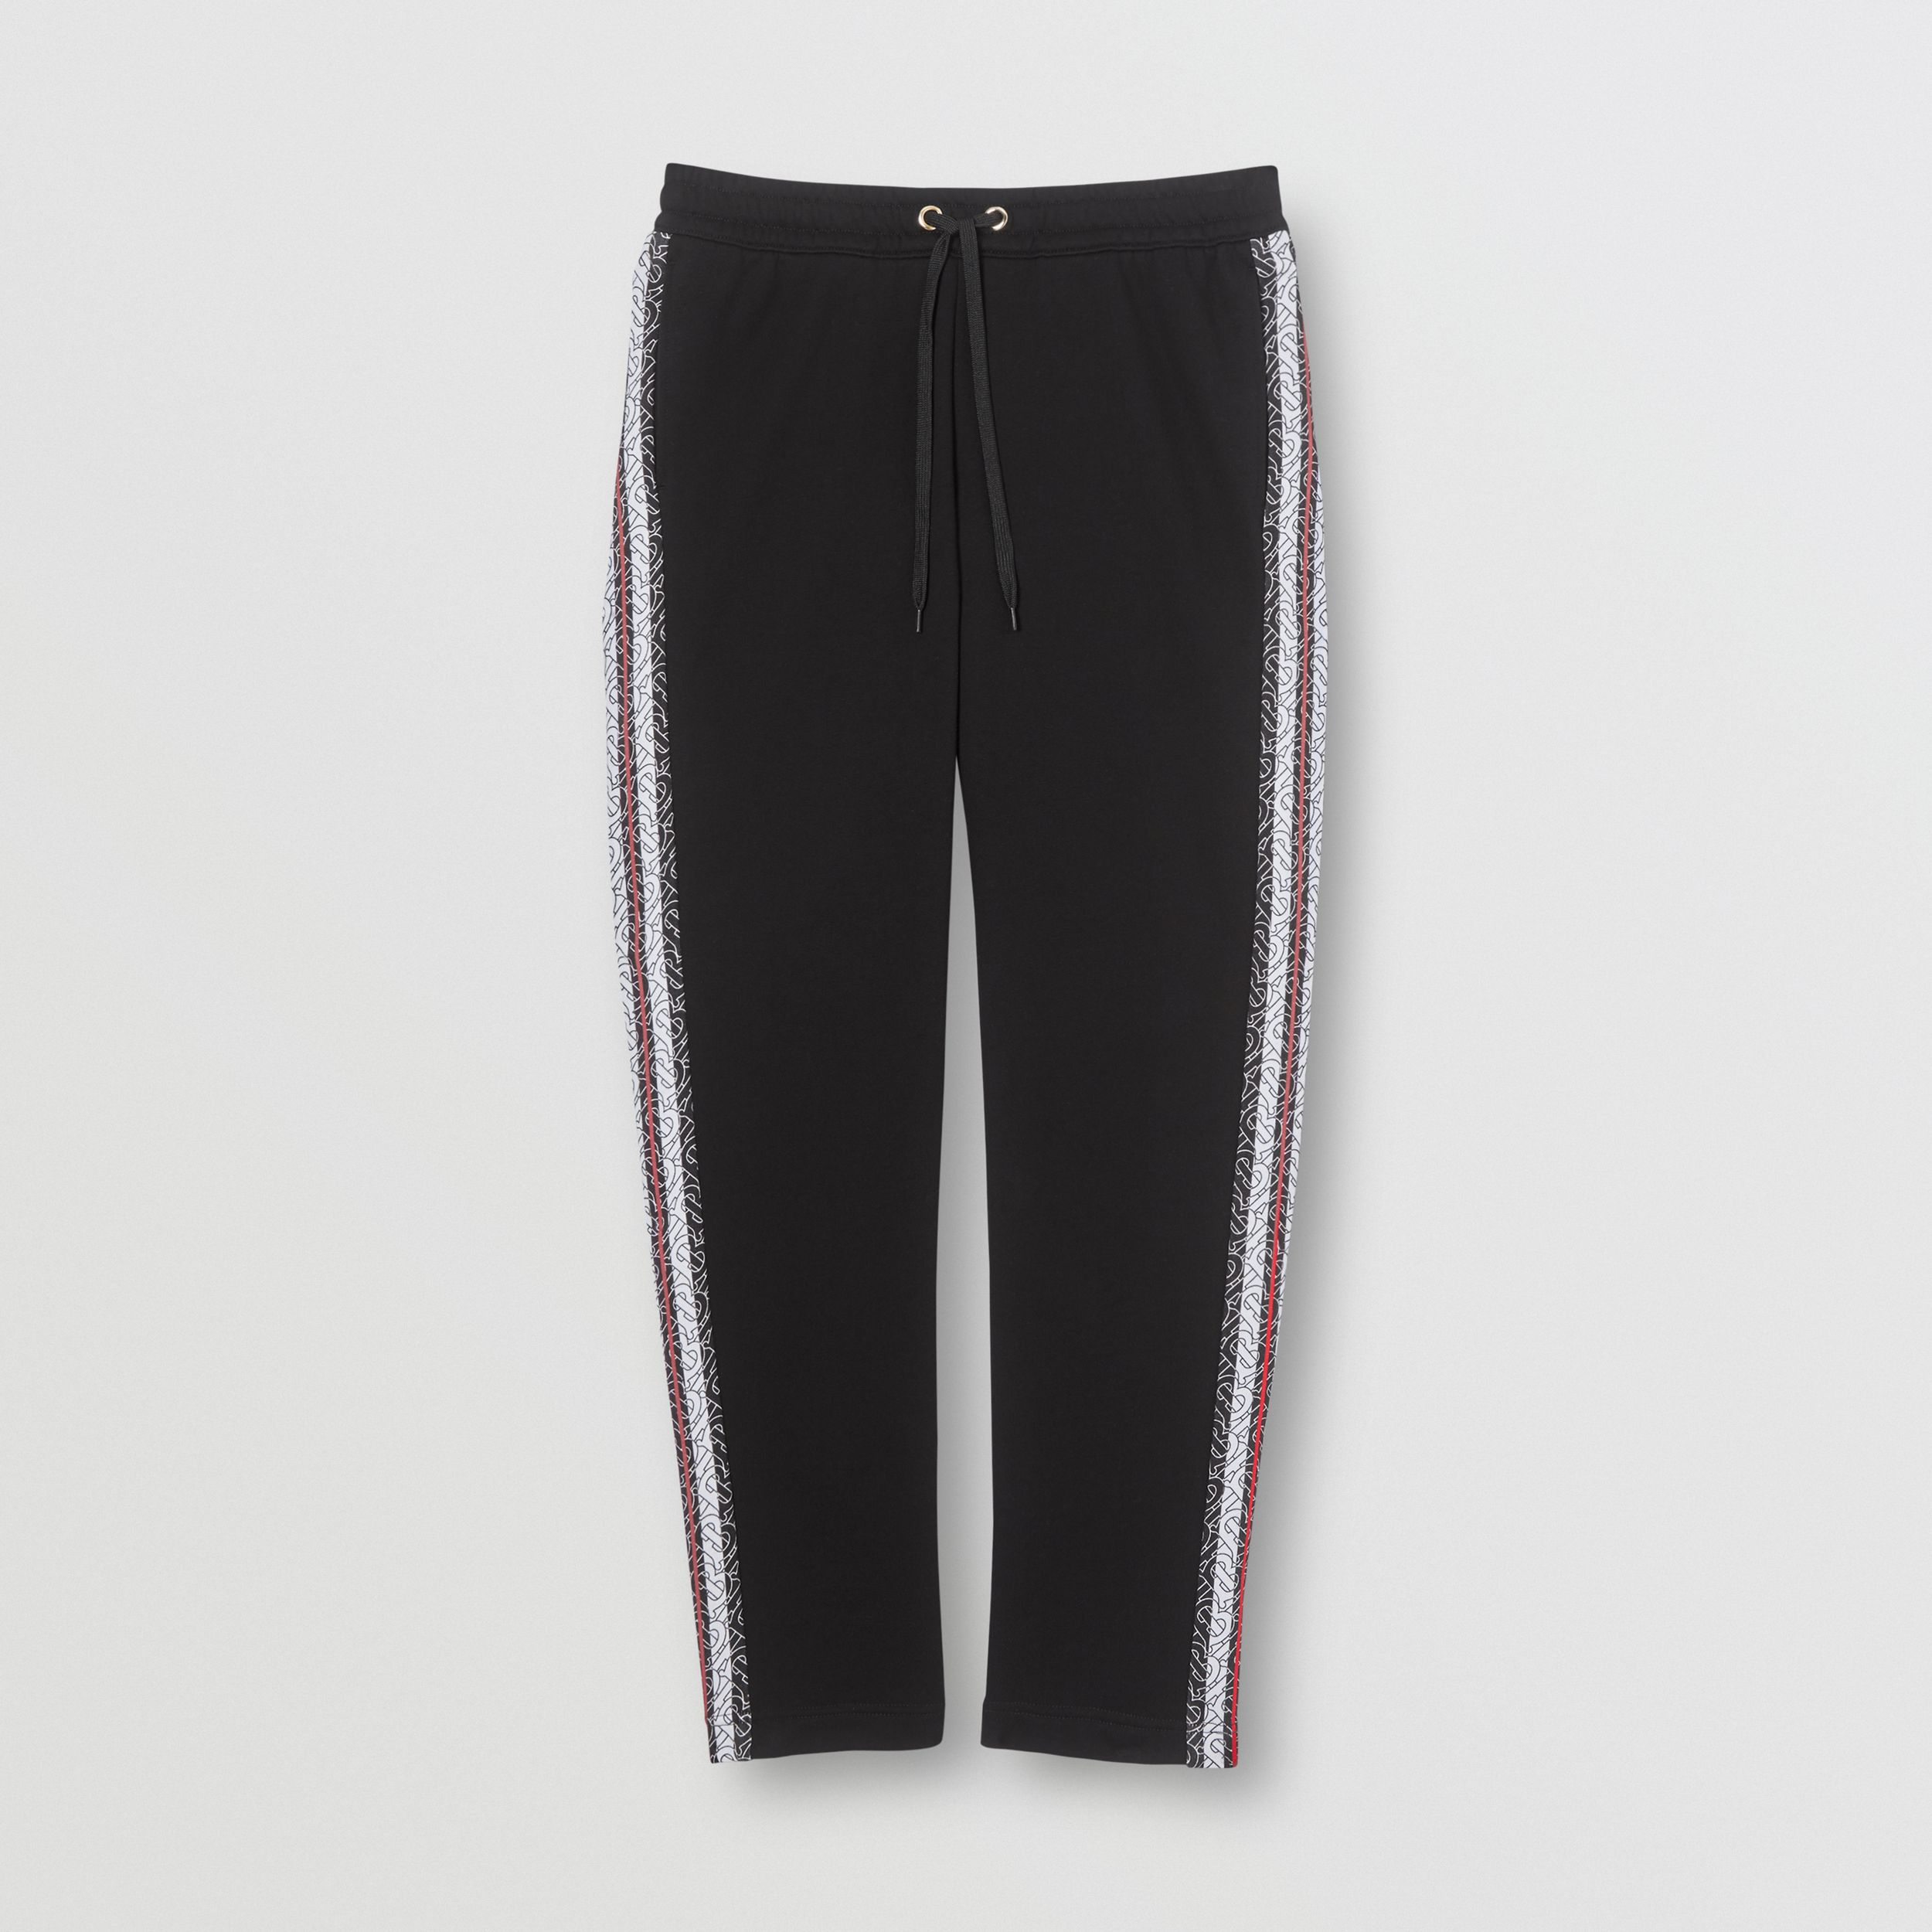 Monogram Stripe Panel Cotton Jogging Pants in Black - Men | Burberry Hong Kong S.A.R. - 4